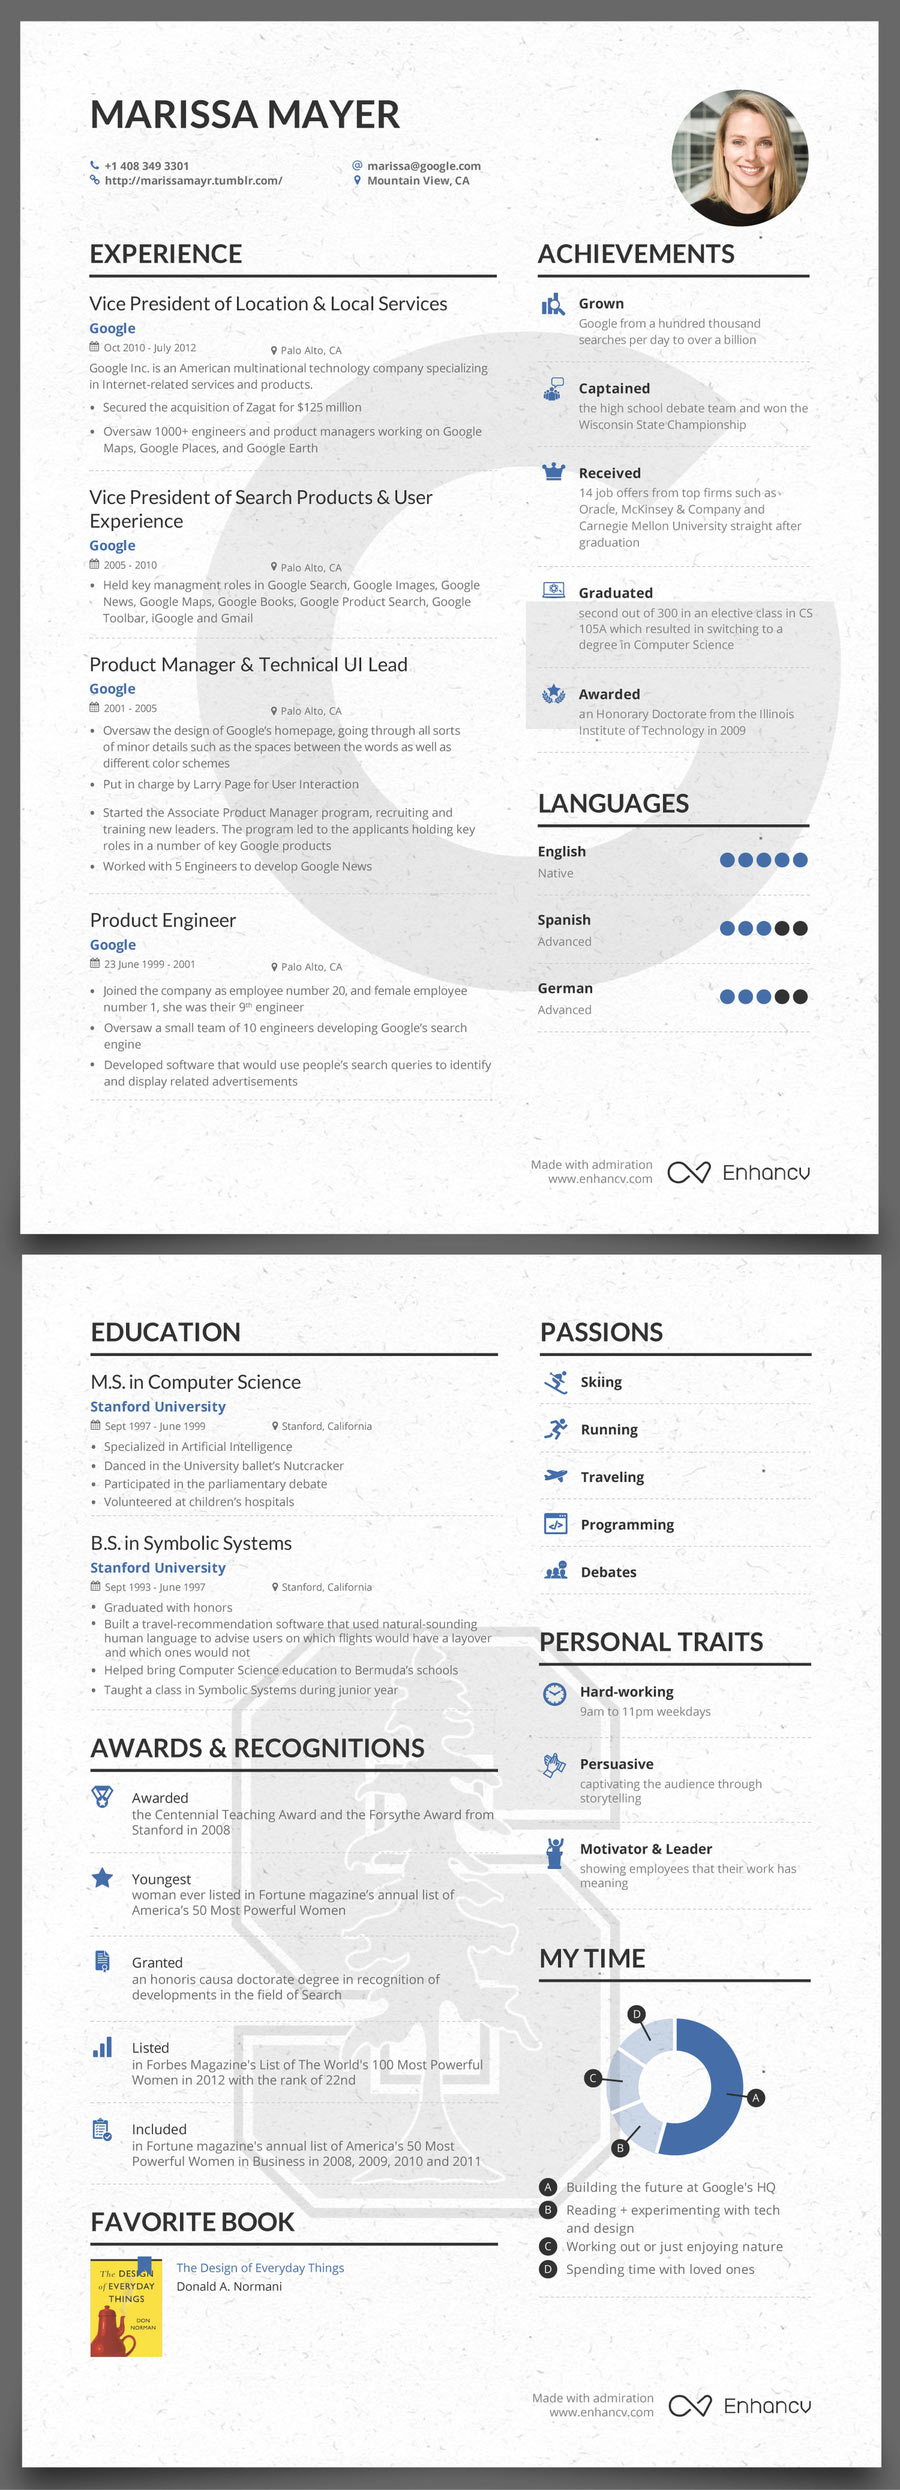 The Success Journey Marissa Mayers Pre Yahoo Resume